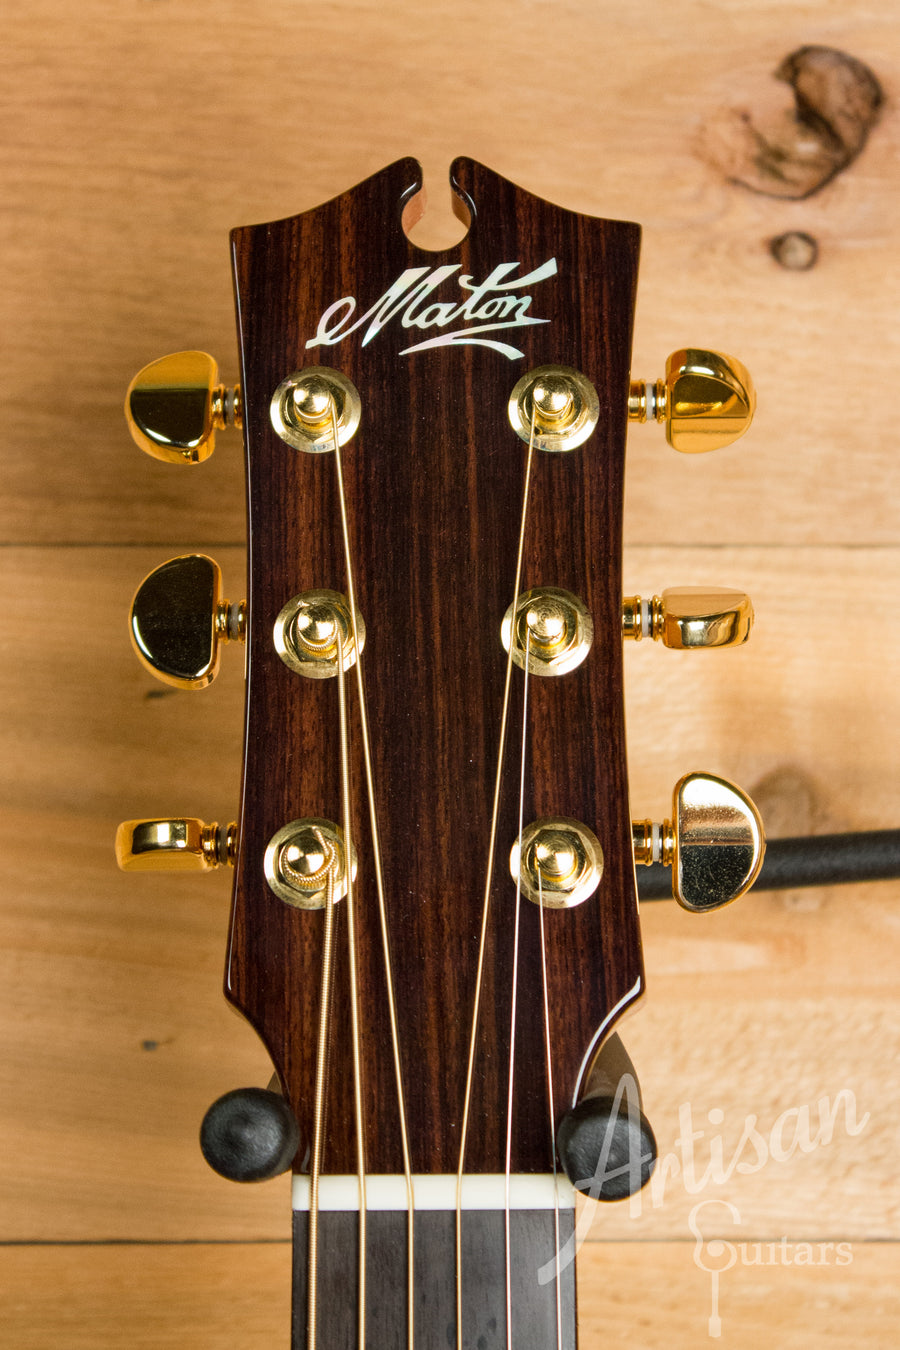 Maton EM 100C 808 Messiah Series Guitar with Sitka and Indian Rosewood Cutaway Pre-Owned 2011 ID-11080